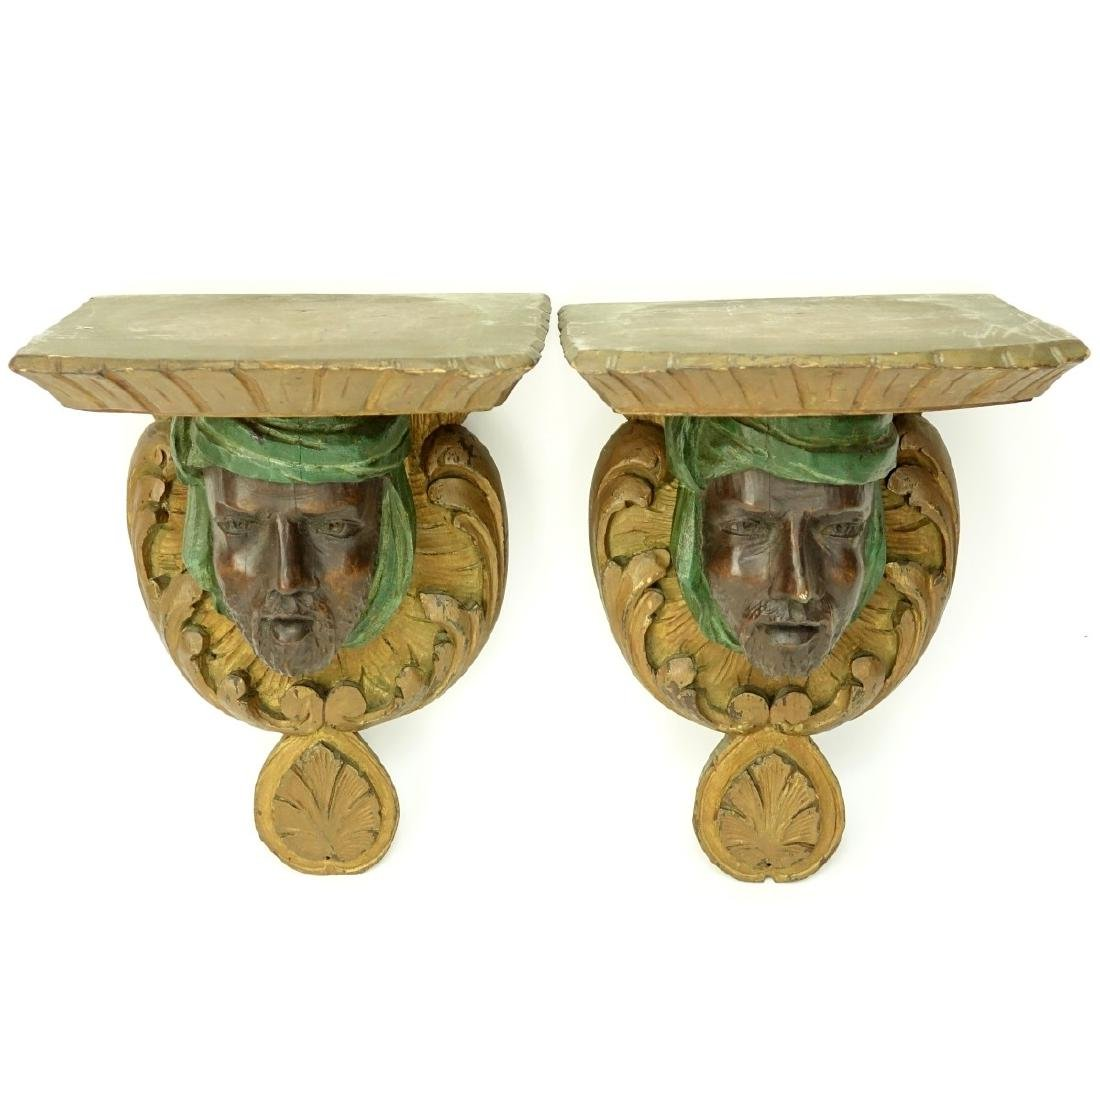 Pair of Carved Wood Arab Figural Wall Brackets